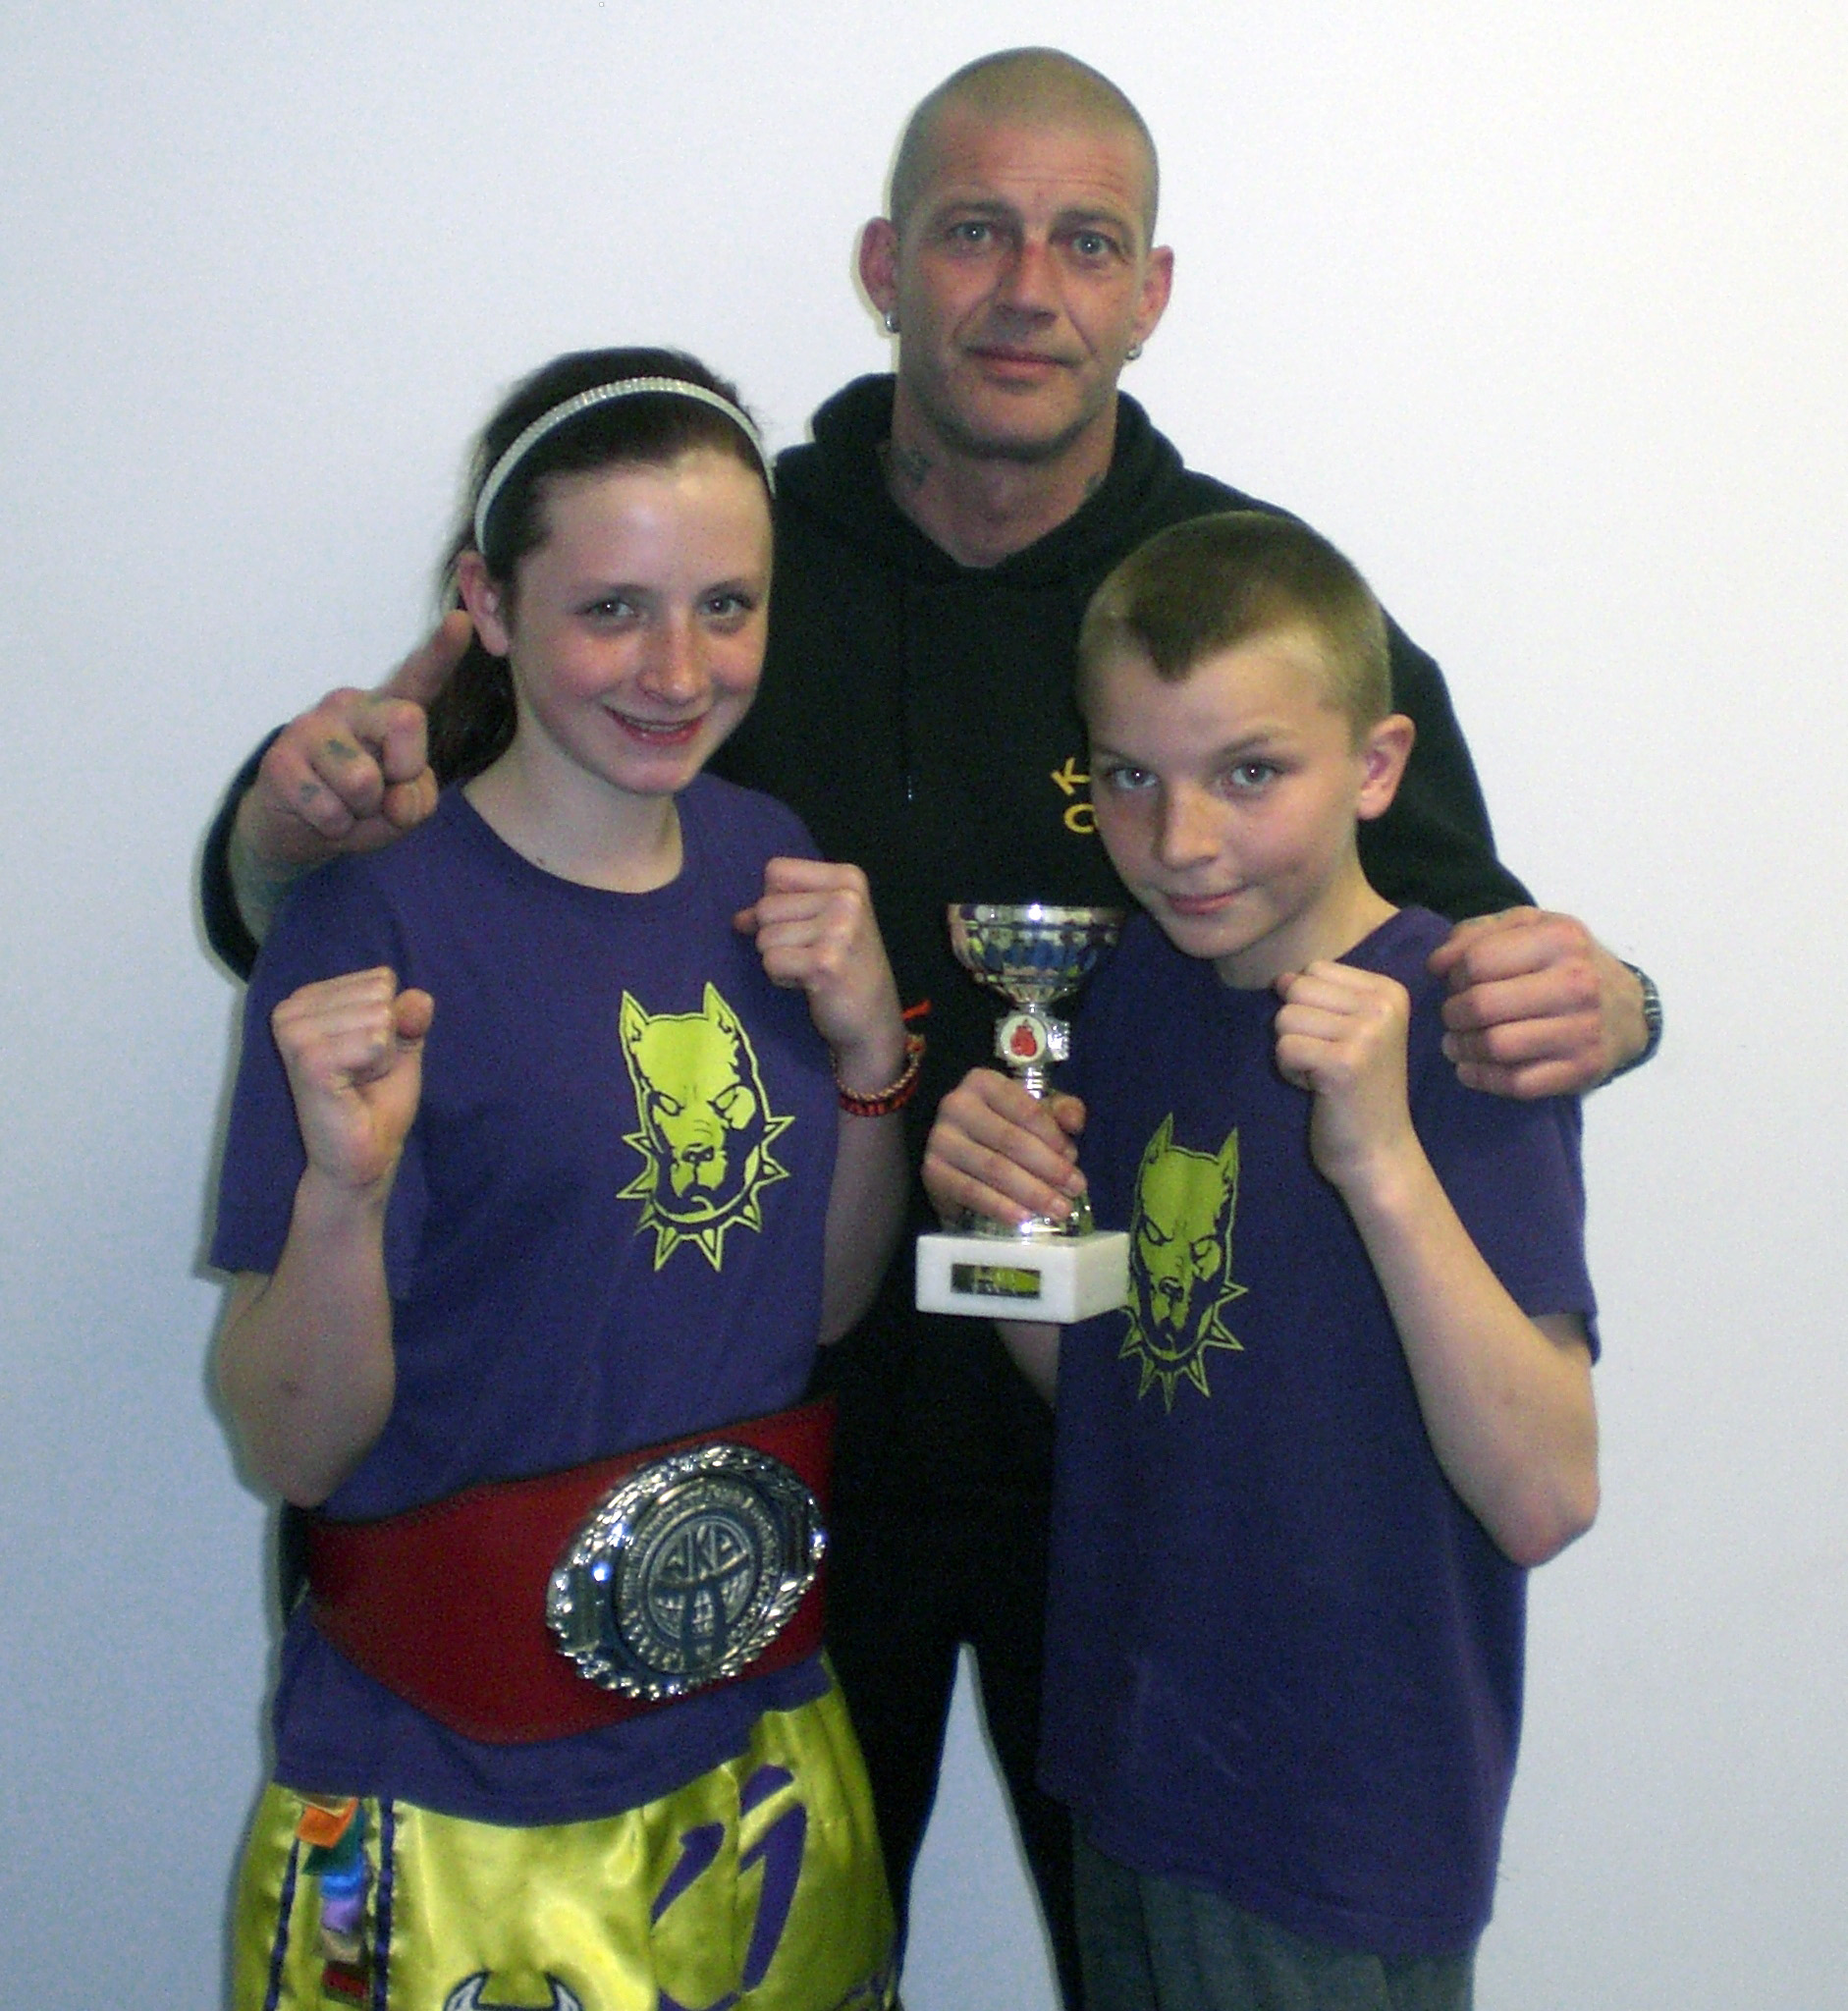 New National Schoolgirl Champion Tia Sayer with Coach Dave Munro and fighter of the night Nicky McHugh